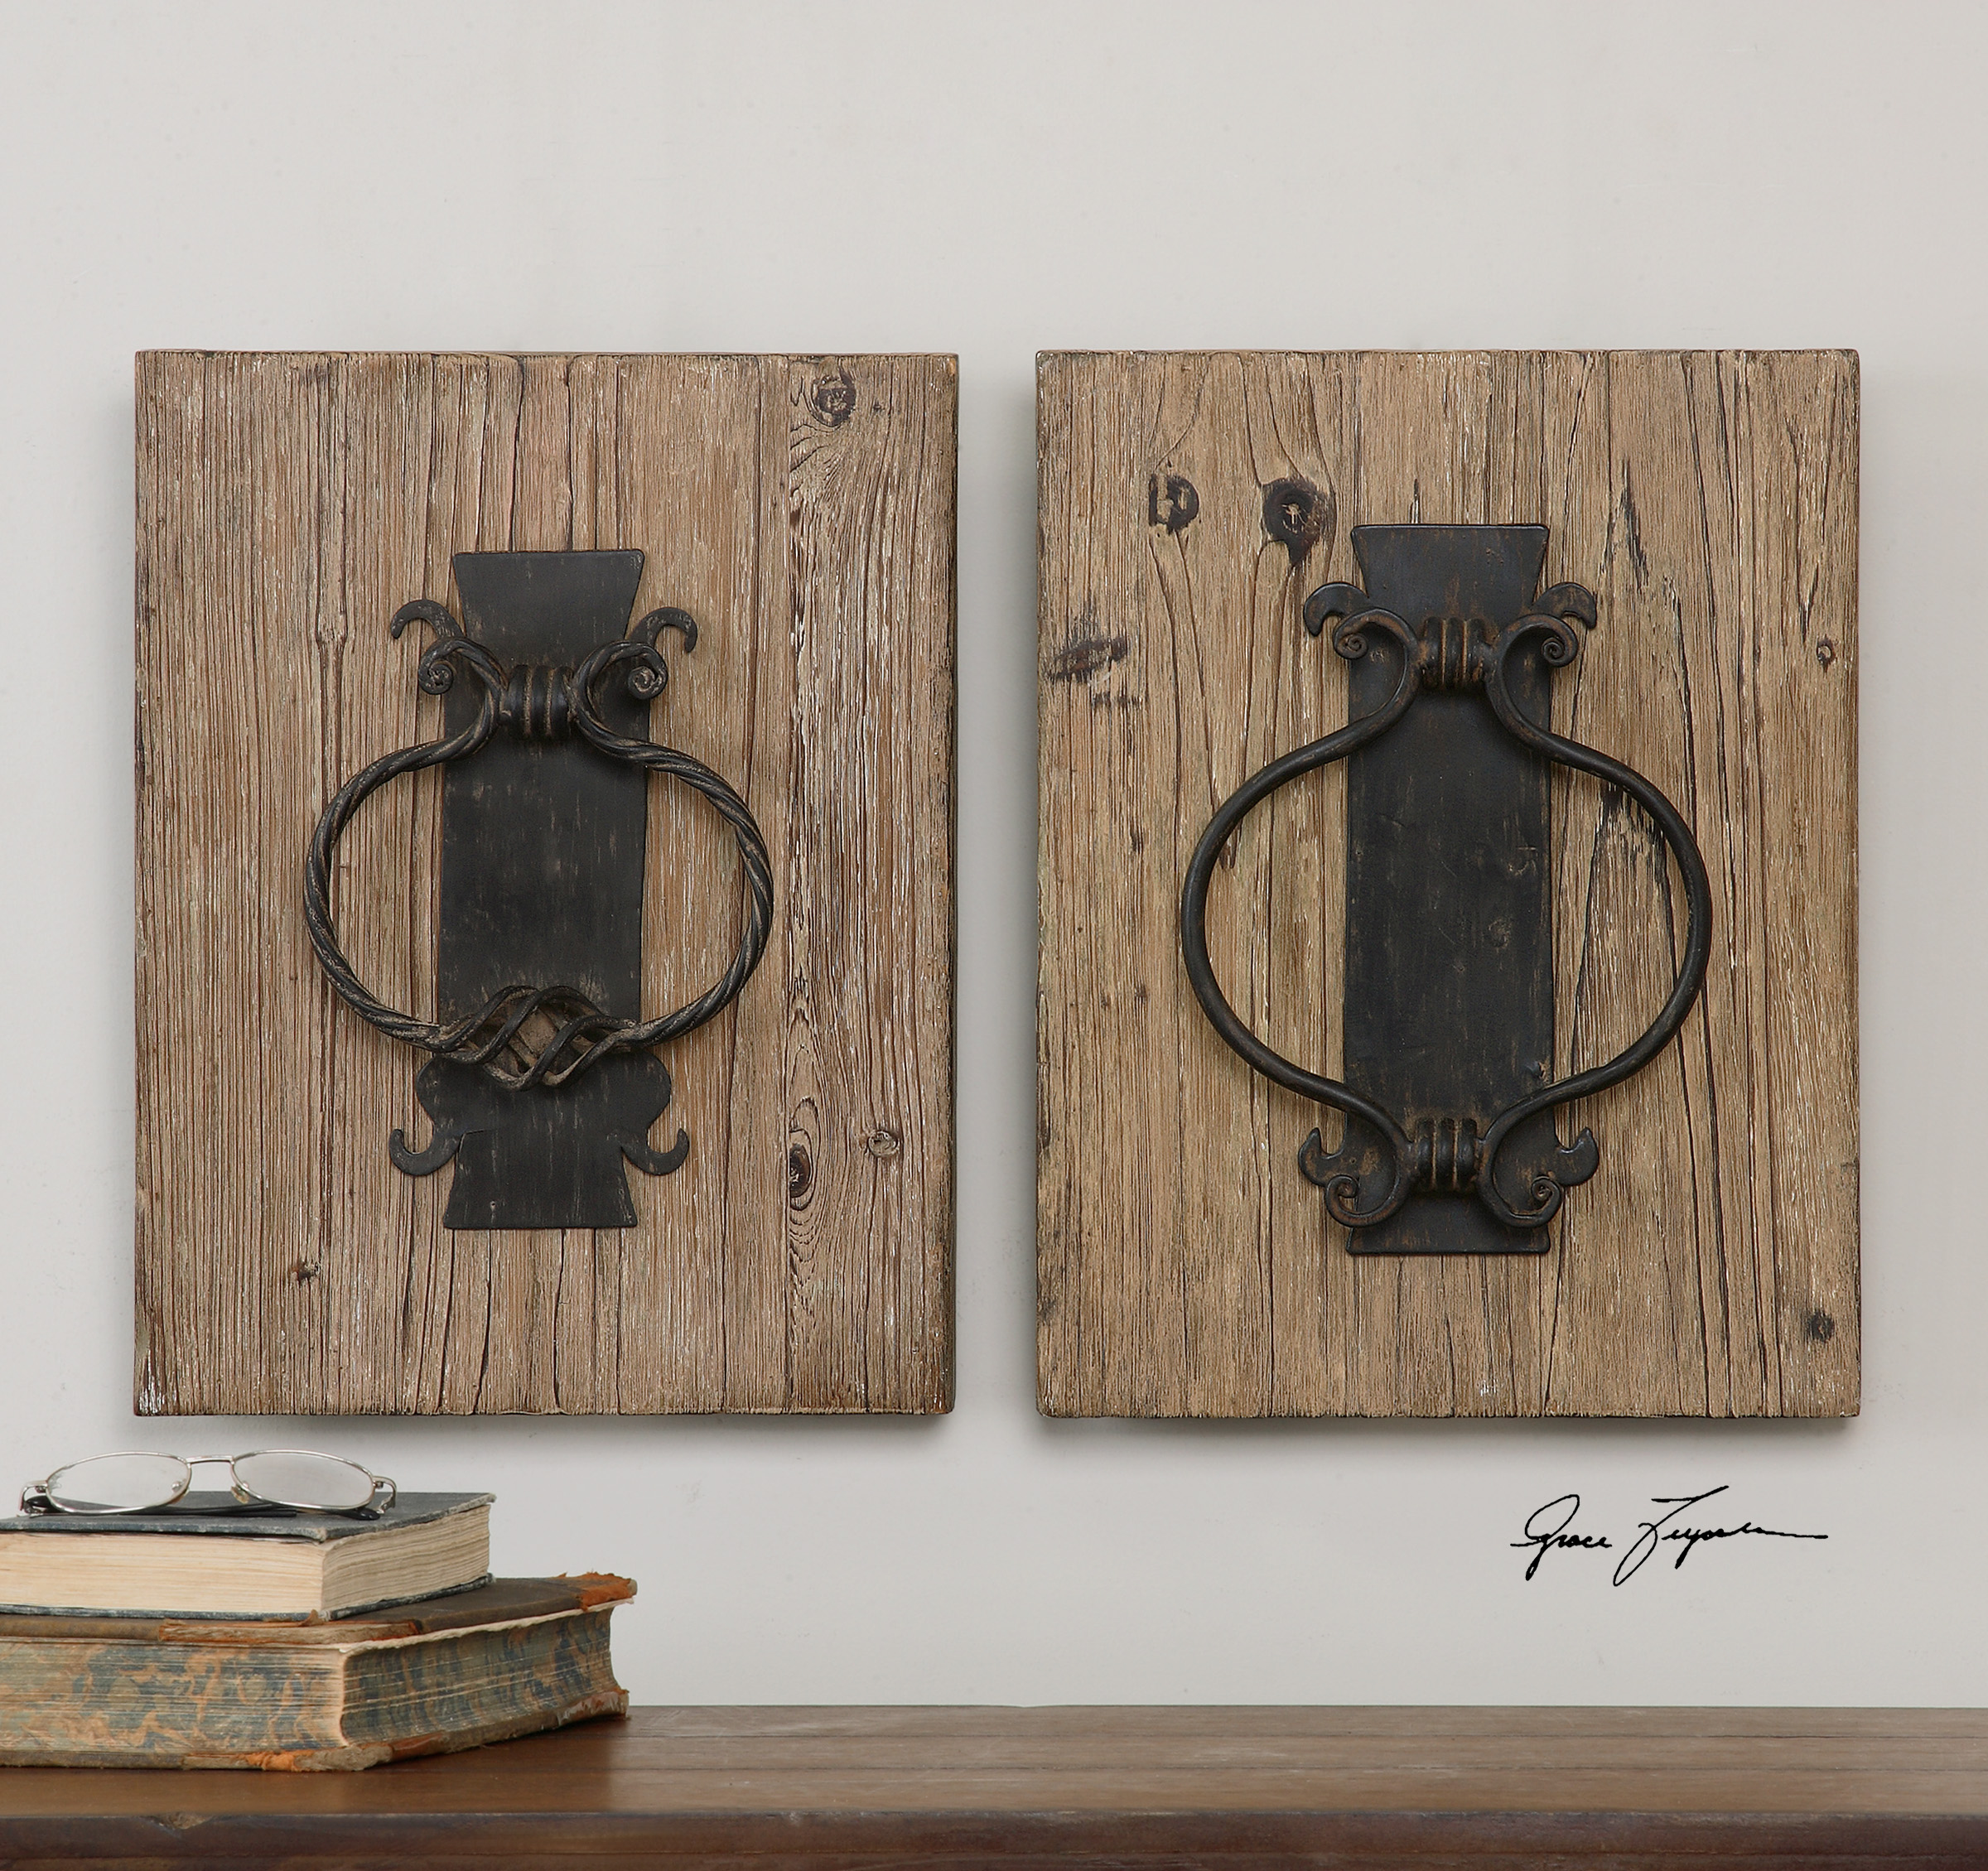 Rustic Photo Wall Decor : Rustic door knockers wall decor